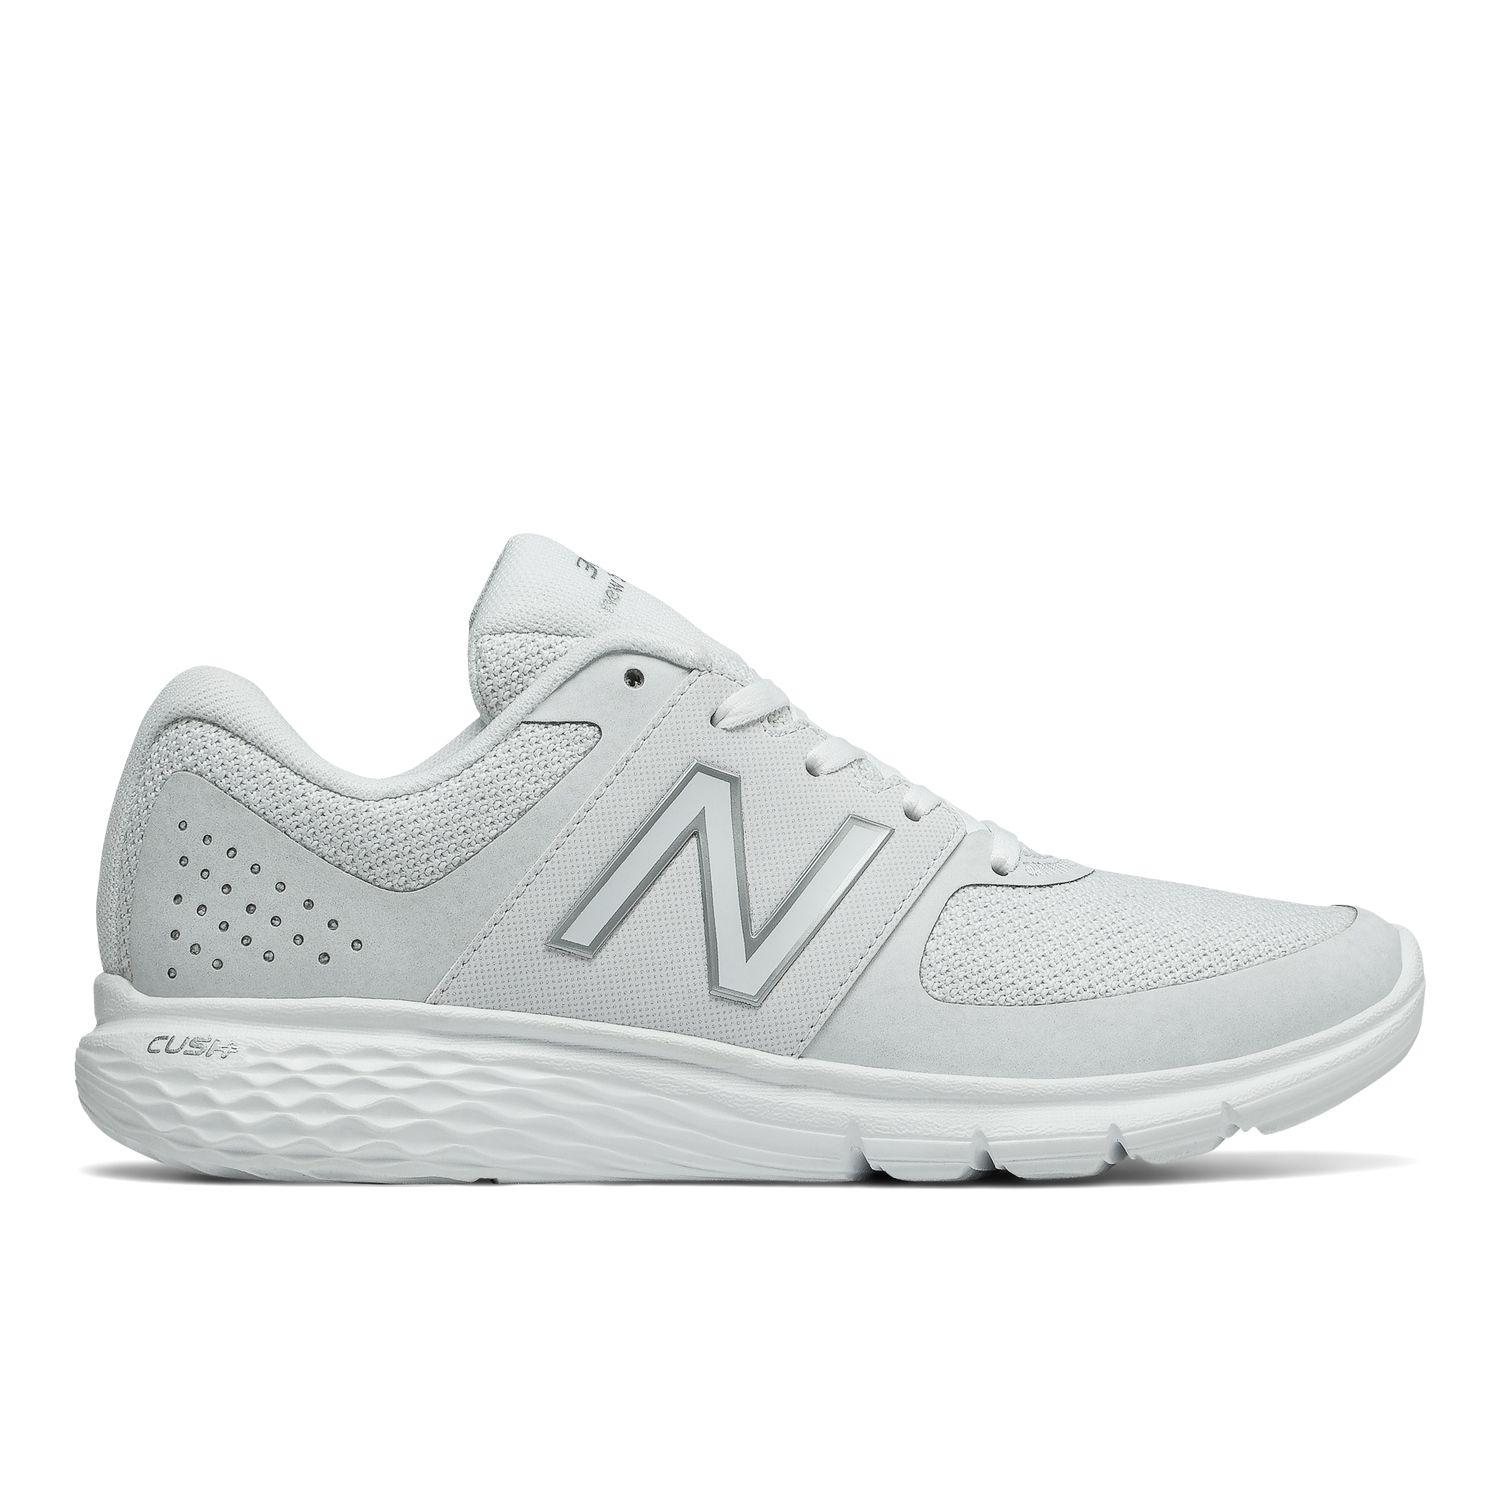 d1a2e0c081c16 new balance shoes for boys at jcpenney we550bw3 new balance running ...